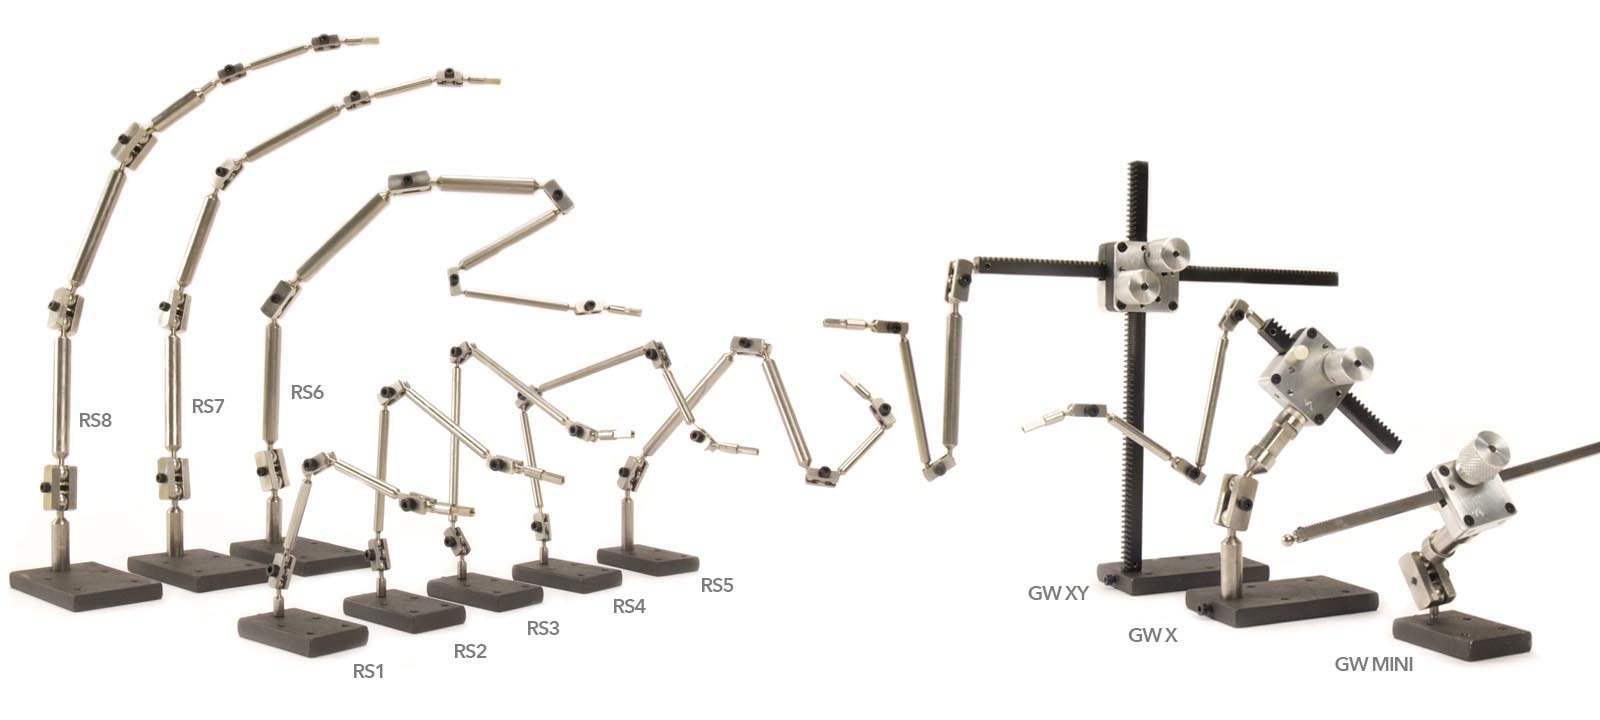 Kinetic Armatures Rigs And Winders Kinetic Armatures